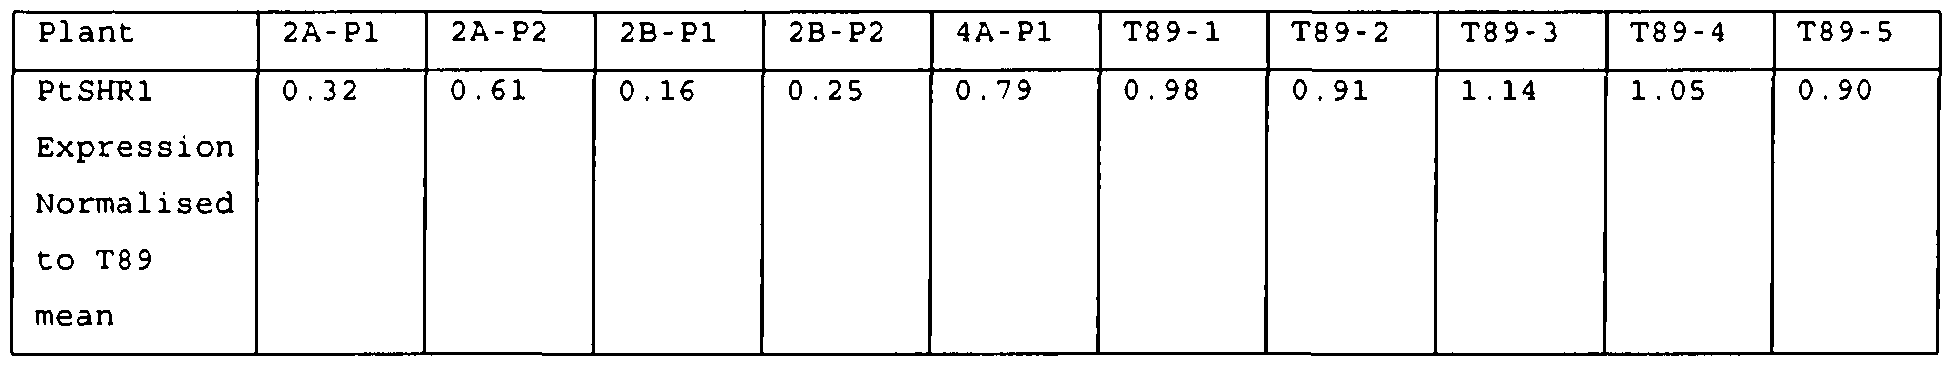 WO2008125983A2 - Methods of increasing plant growth - Google